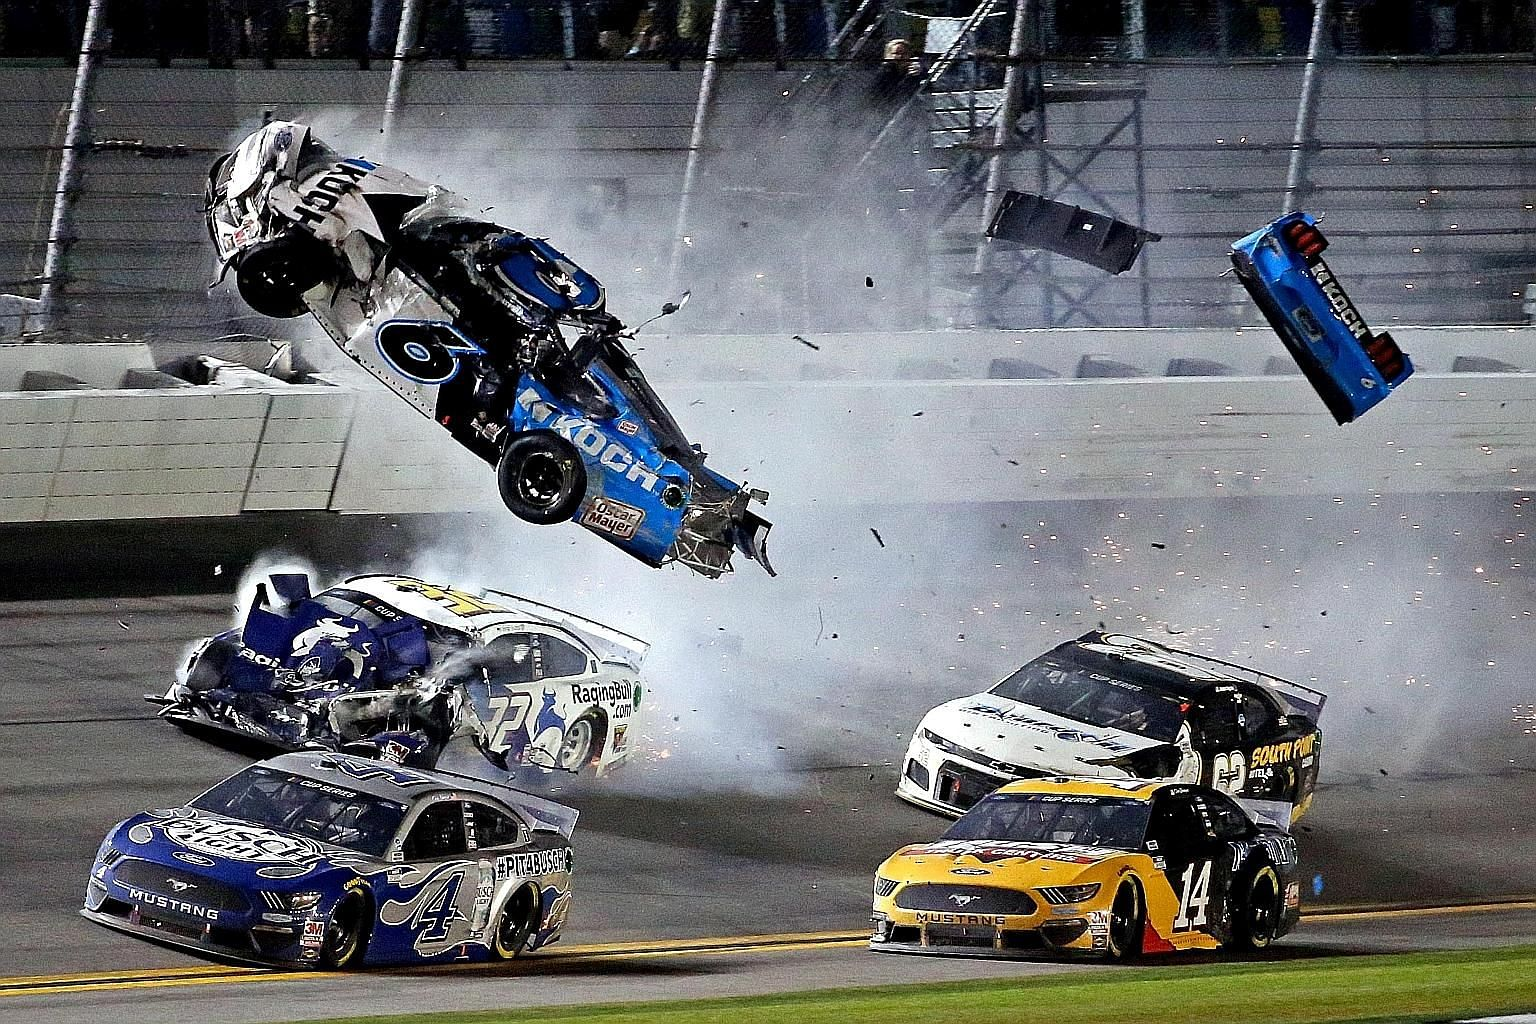 Ryan Newman's mishap was one of the worst at Daytona since Dale Earnhardt's fatal crash in 2001. PHOTO: REUTERS